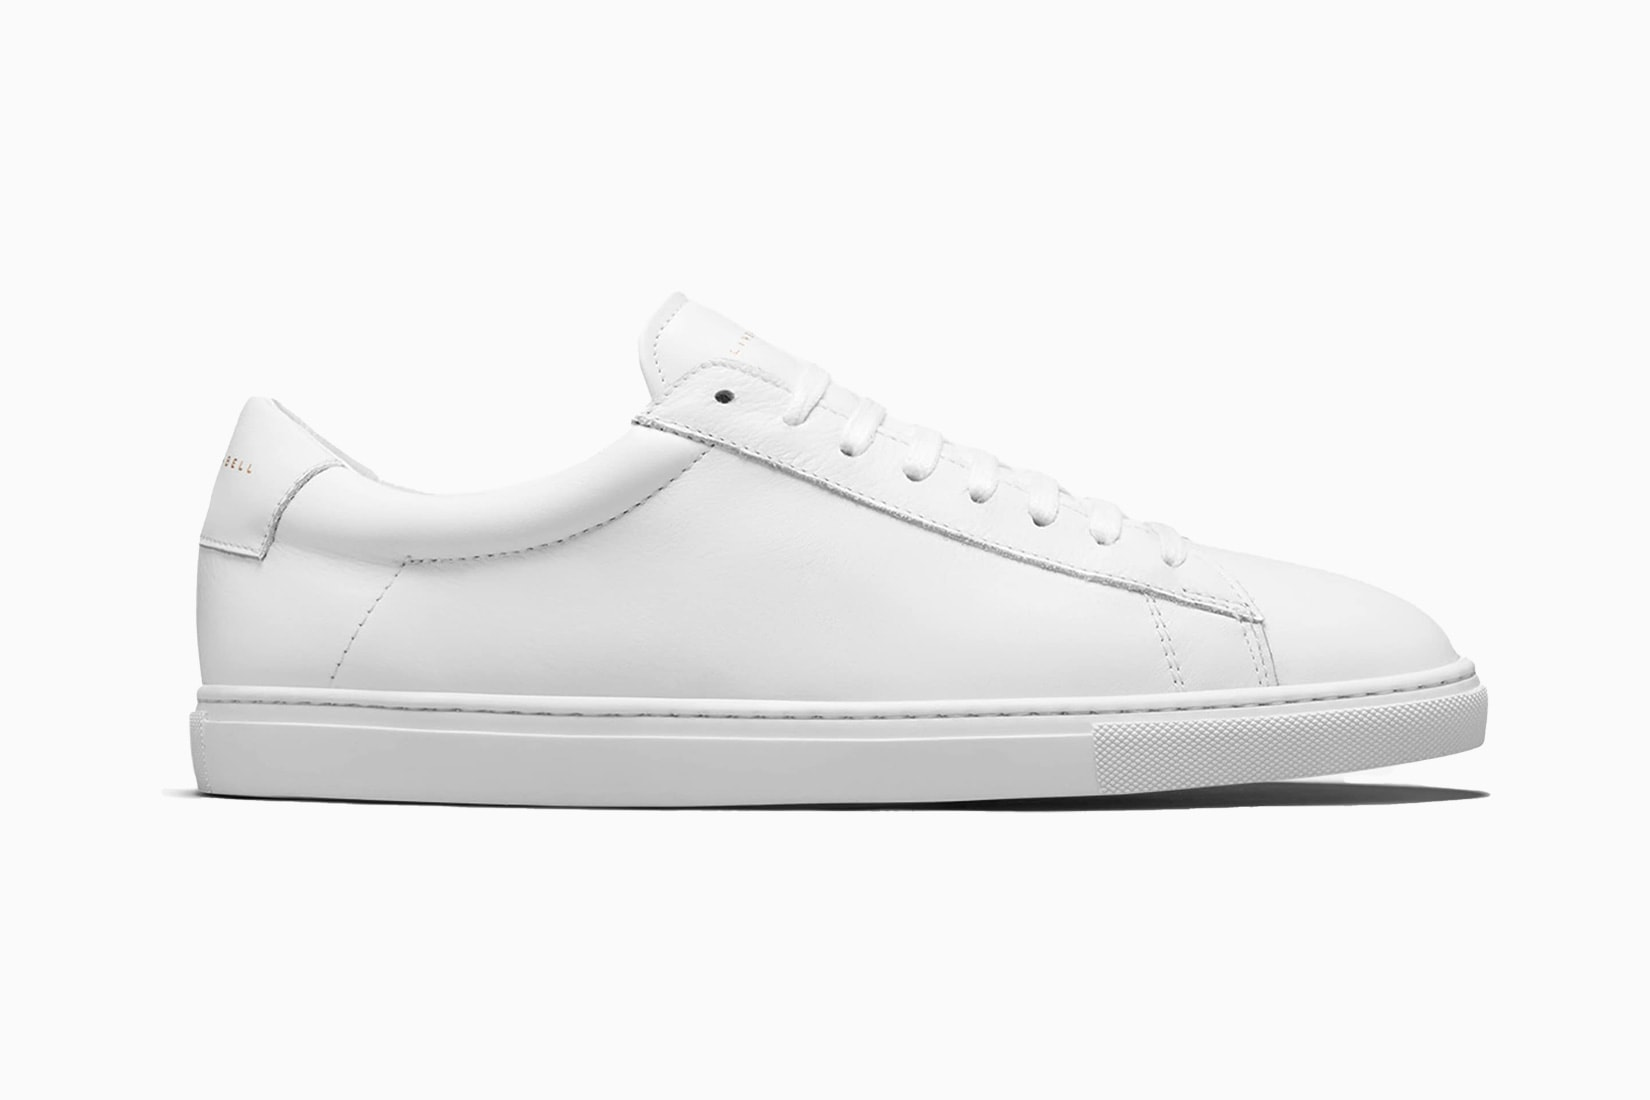 best minimalist white sneakers oliver cabell low 1 review - Luxe Digital